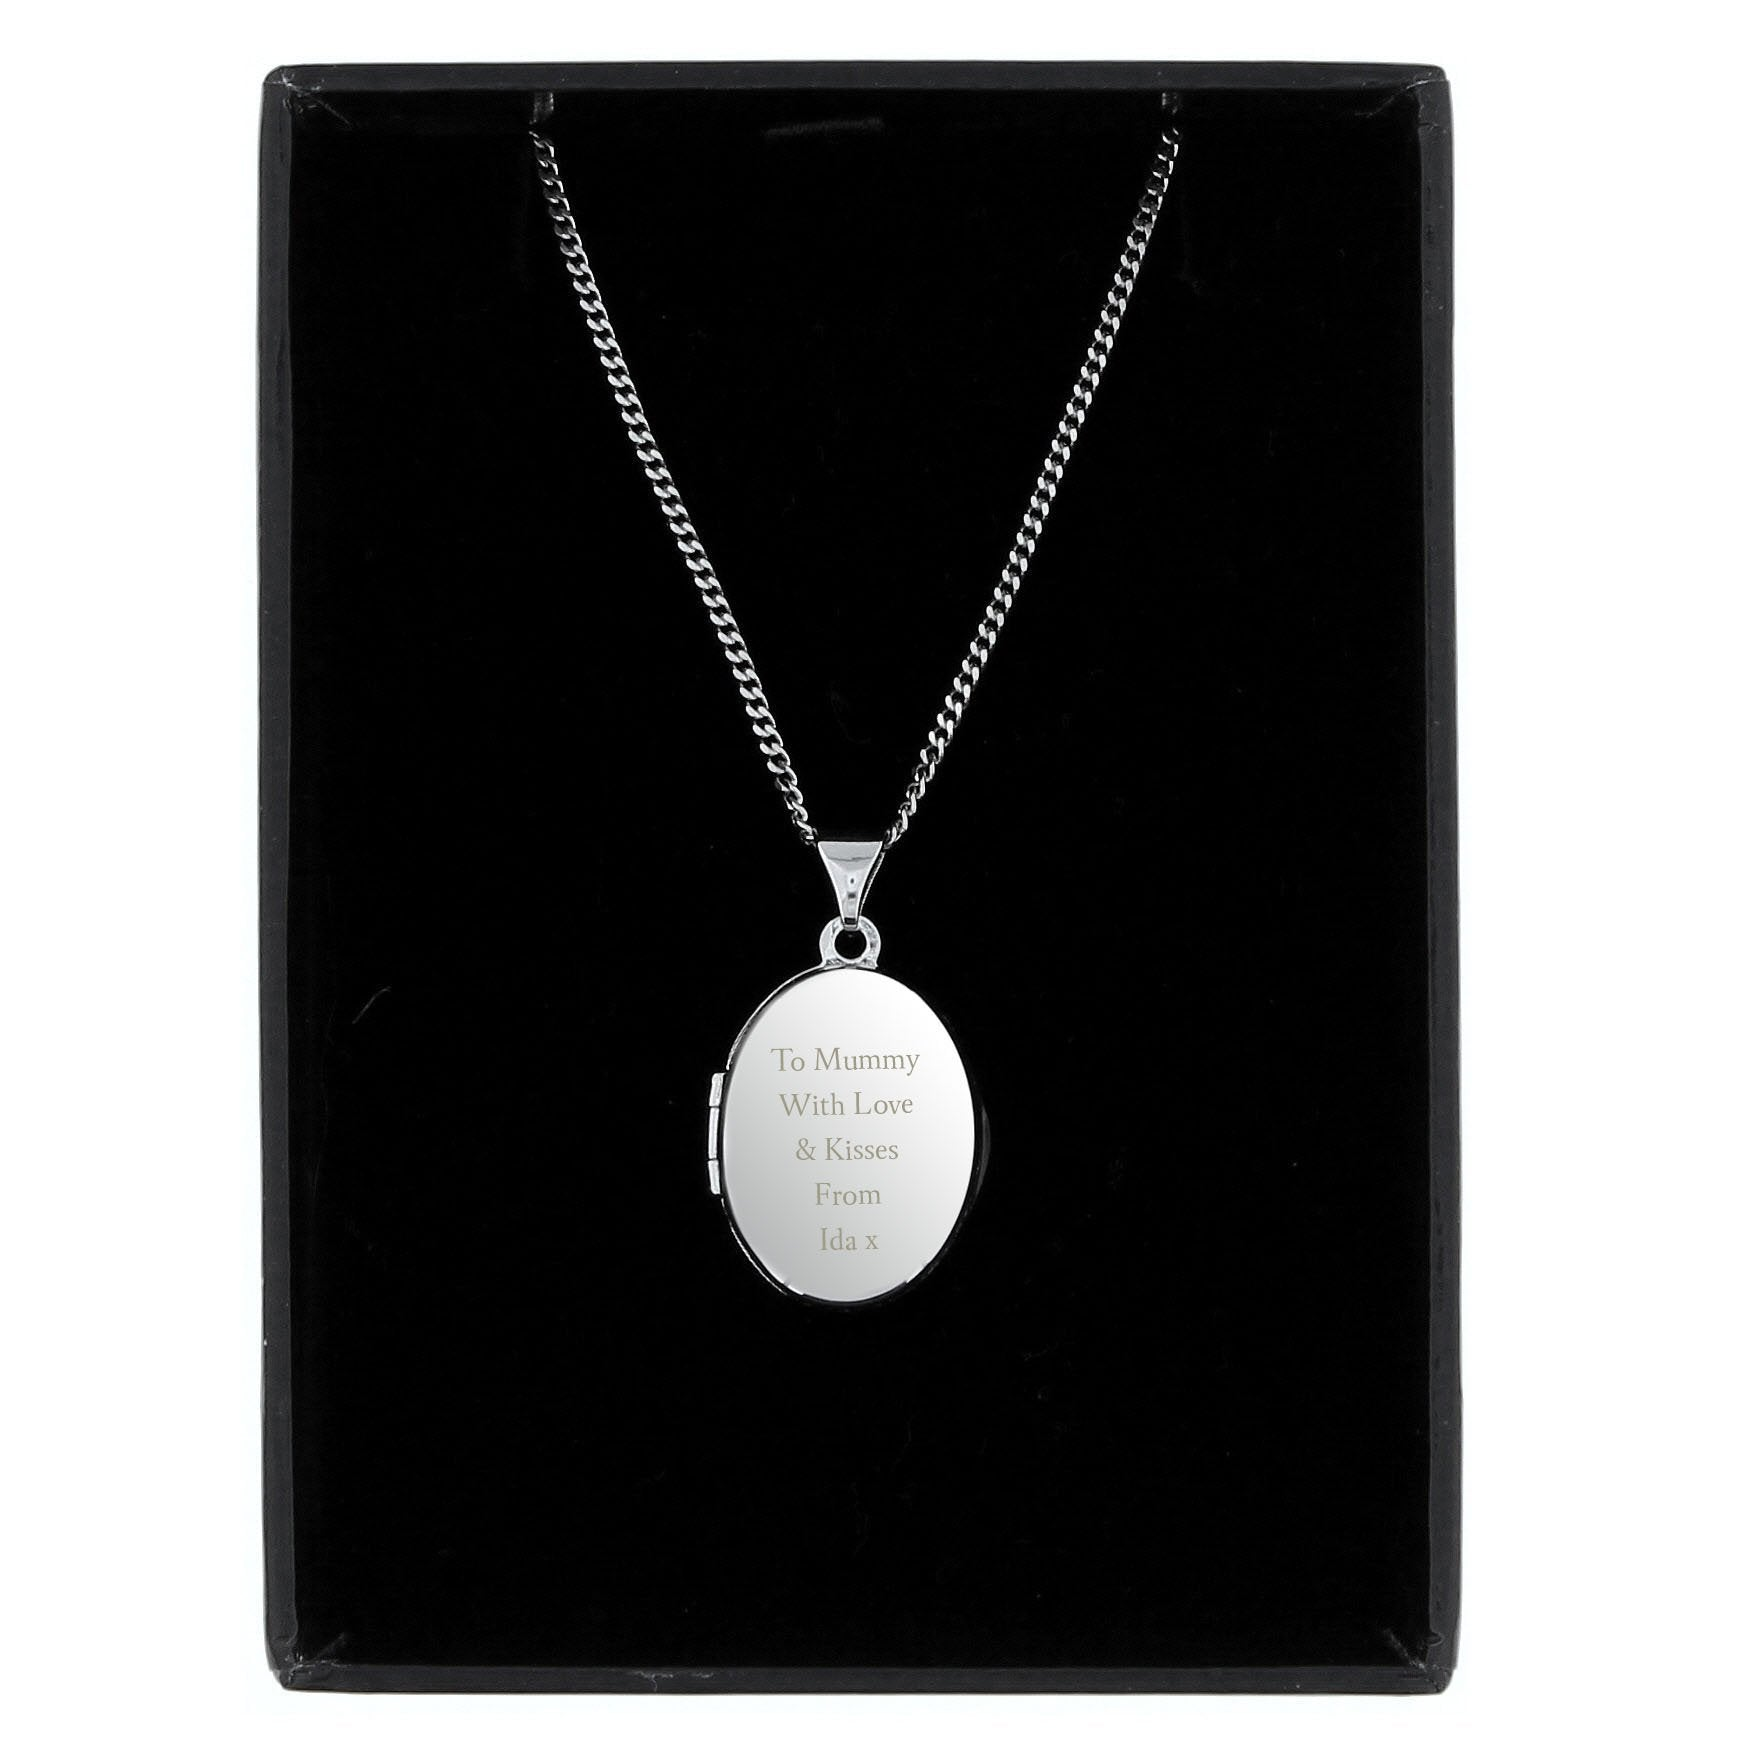 Personalised Sterling Silver Oval Message Locket Necklace - Shop Personalised Gifts (4457617129558)